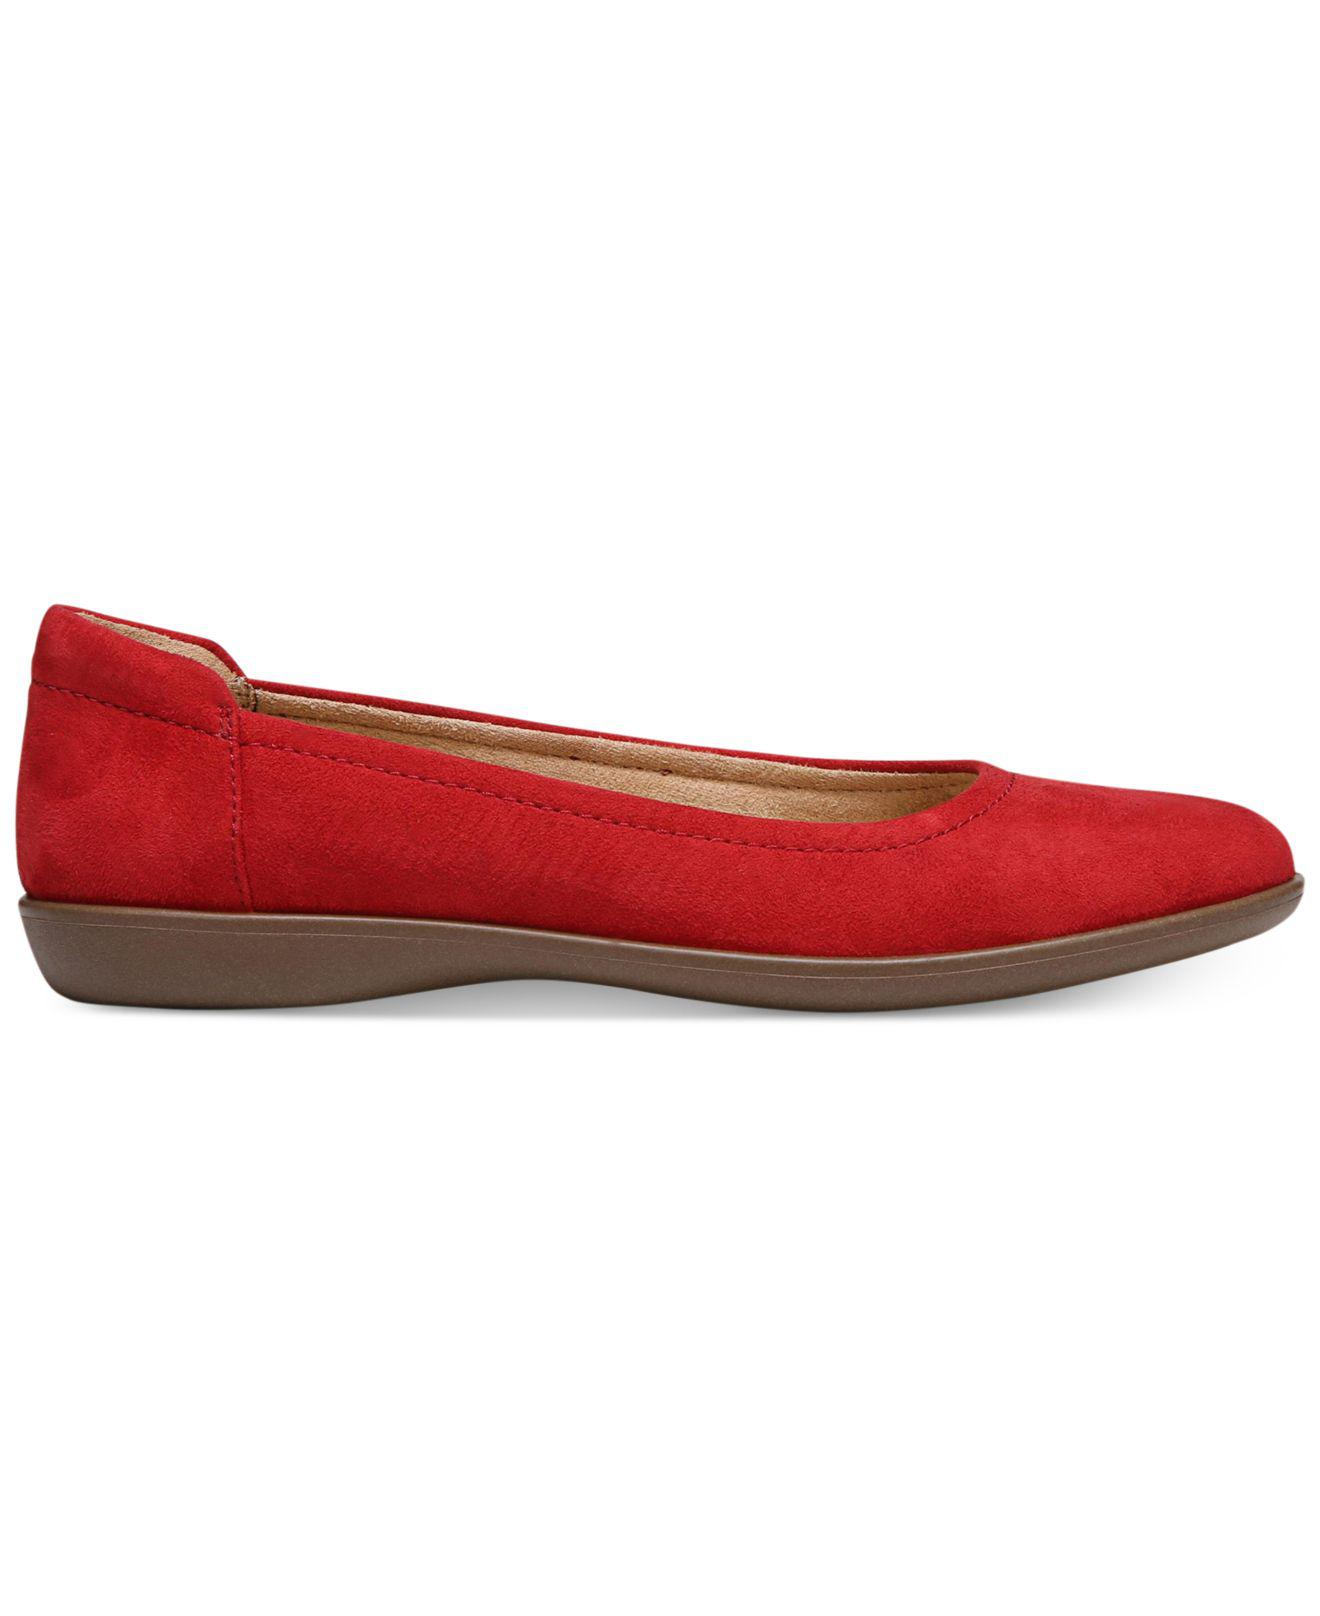 683dd1953f Naturalizer Flexy Flats in Red - Lyst